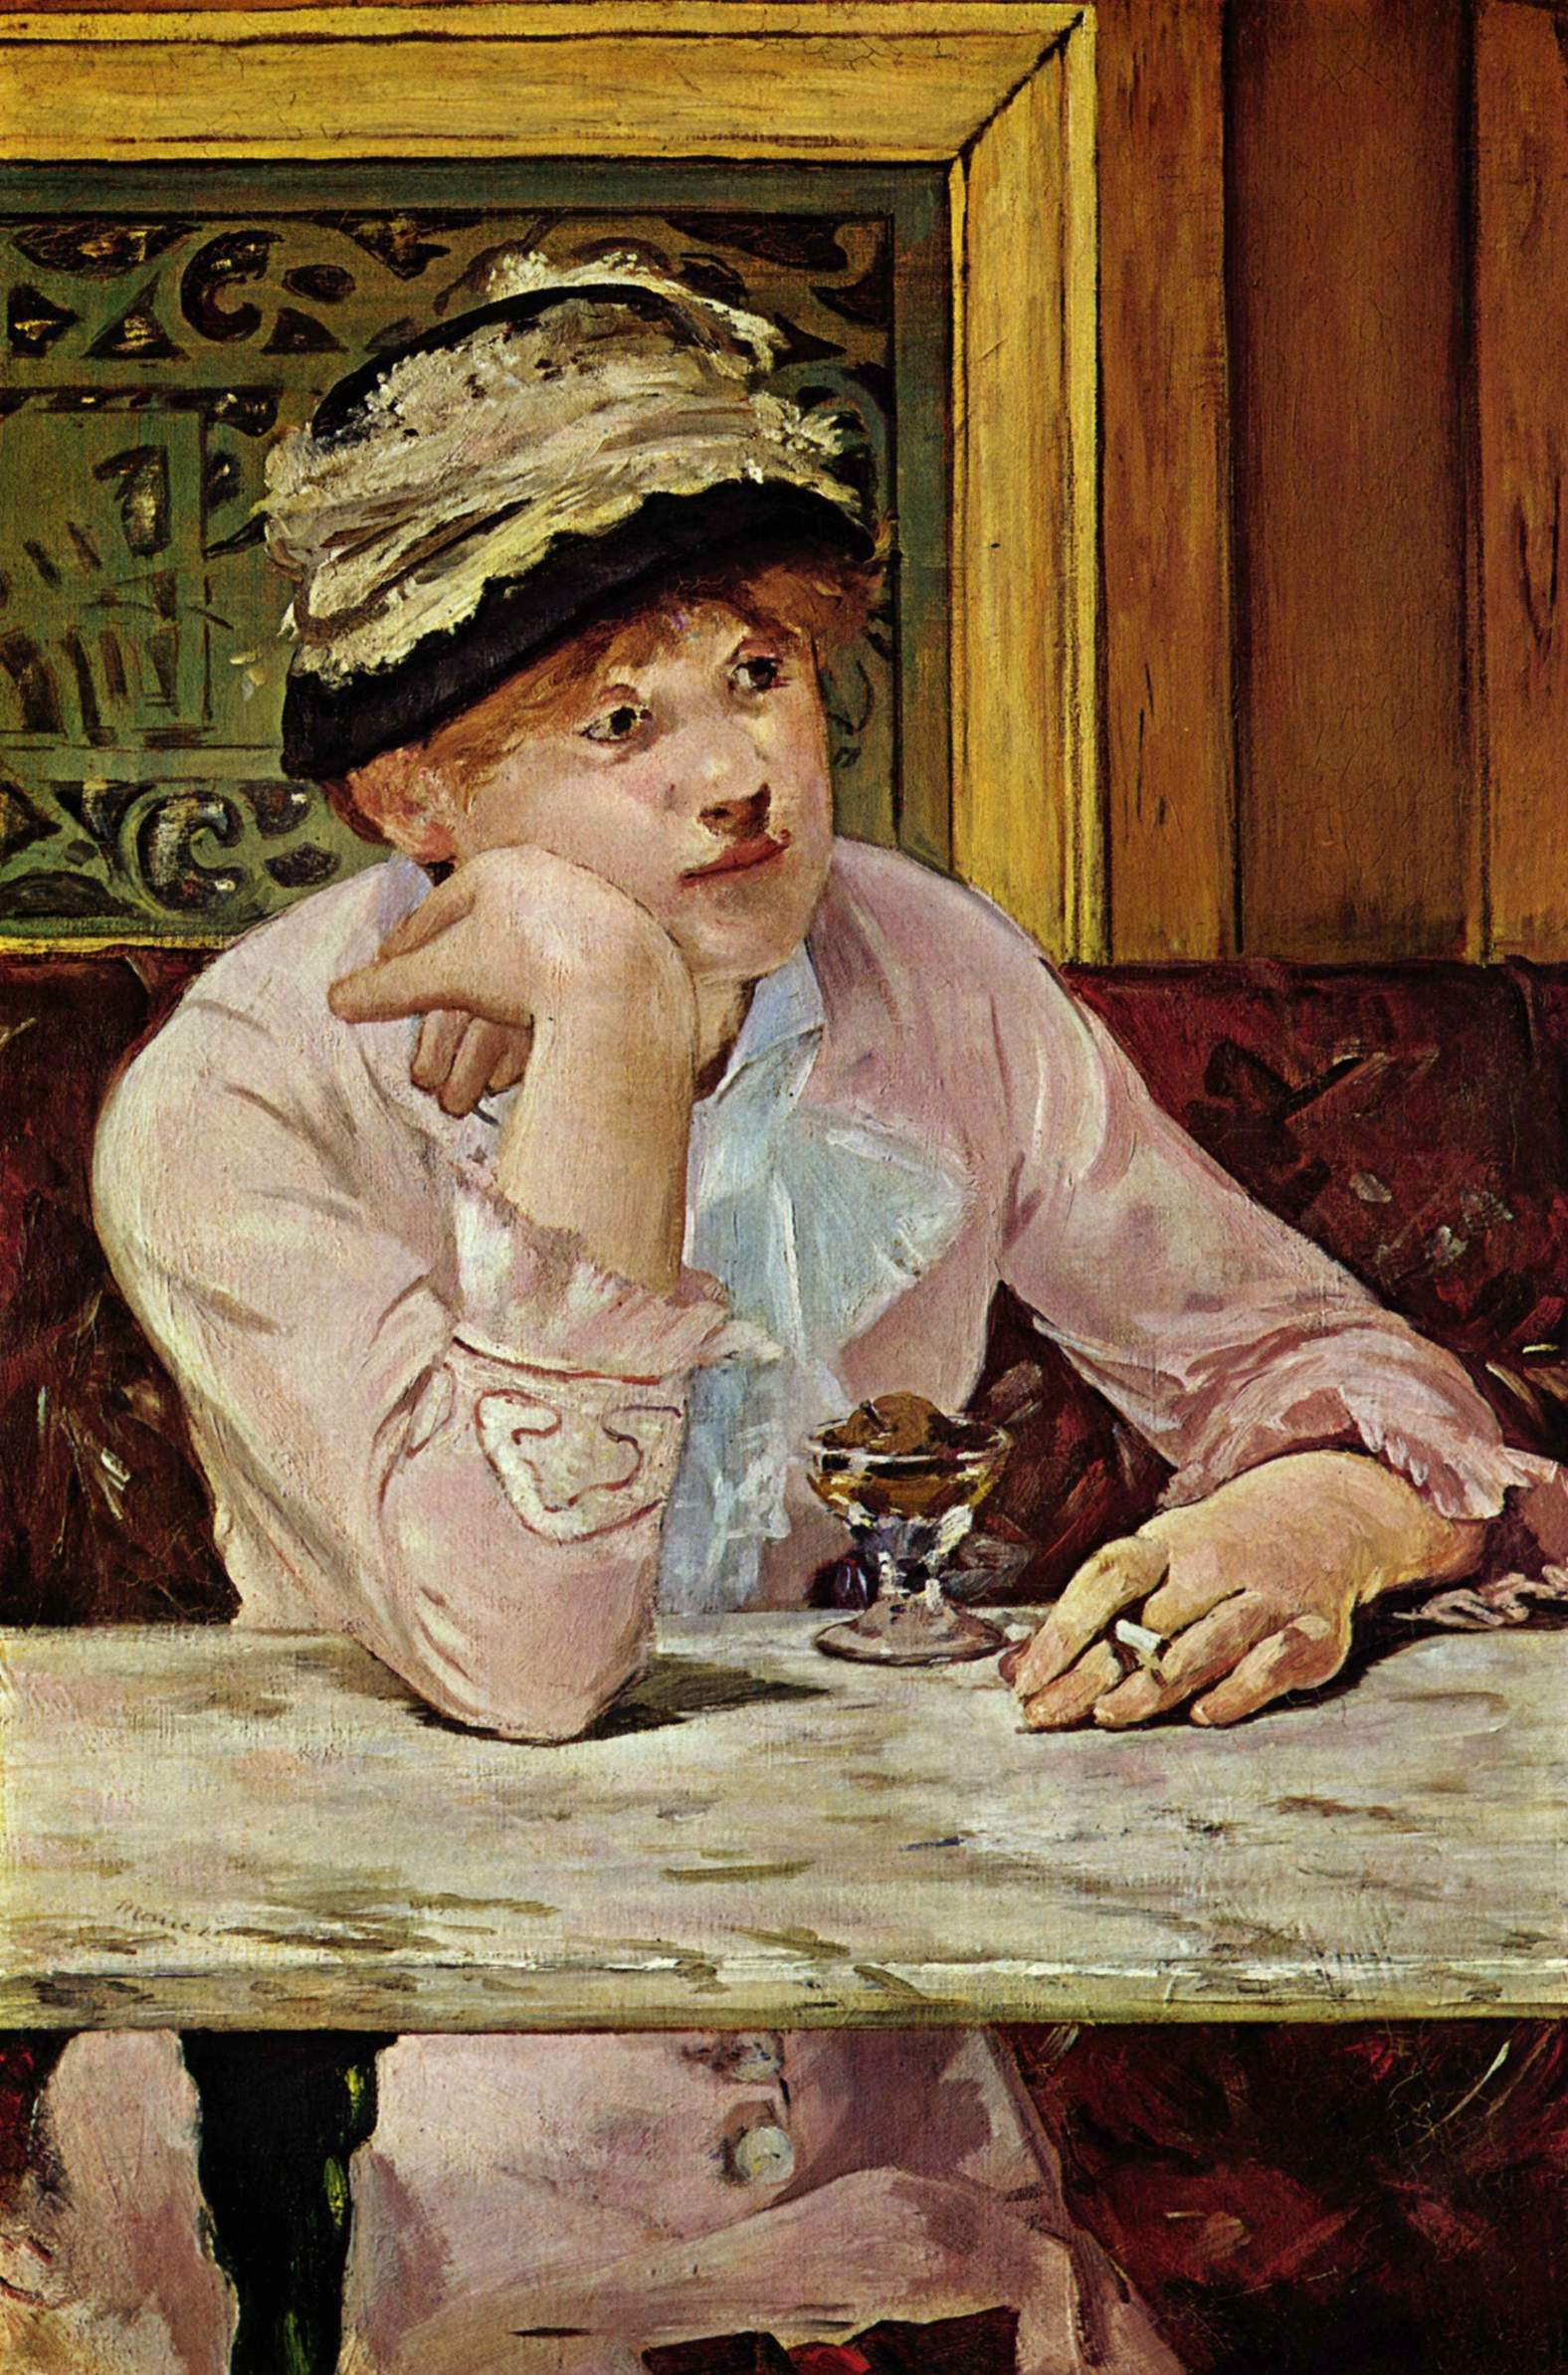 A painting from the Impressionist, Manet